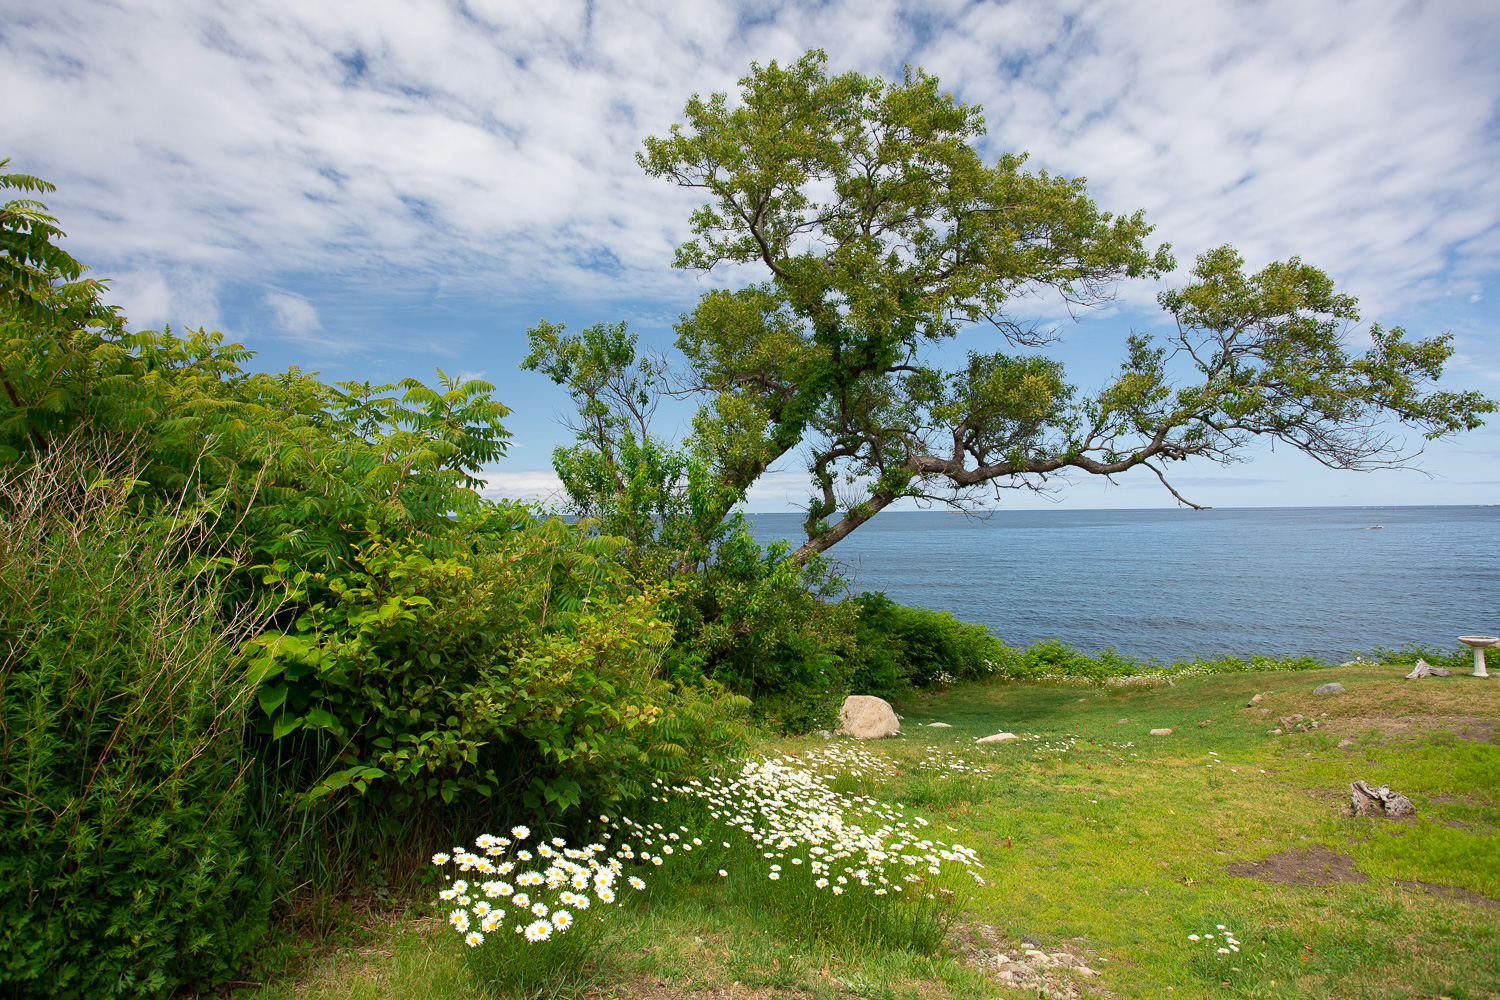 Wider view of the Atlantic Ocean and native daisies growing in Rockport, MA.